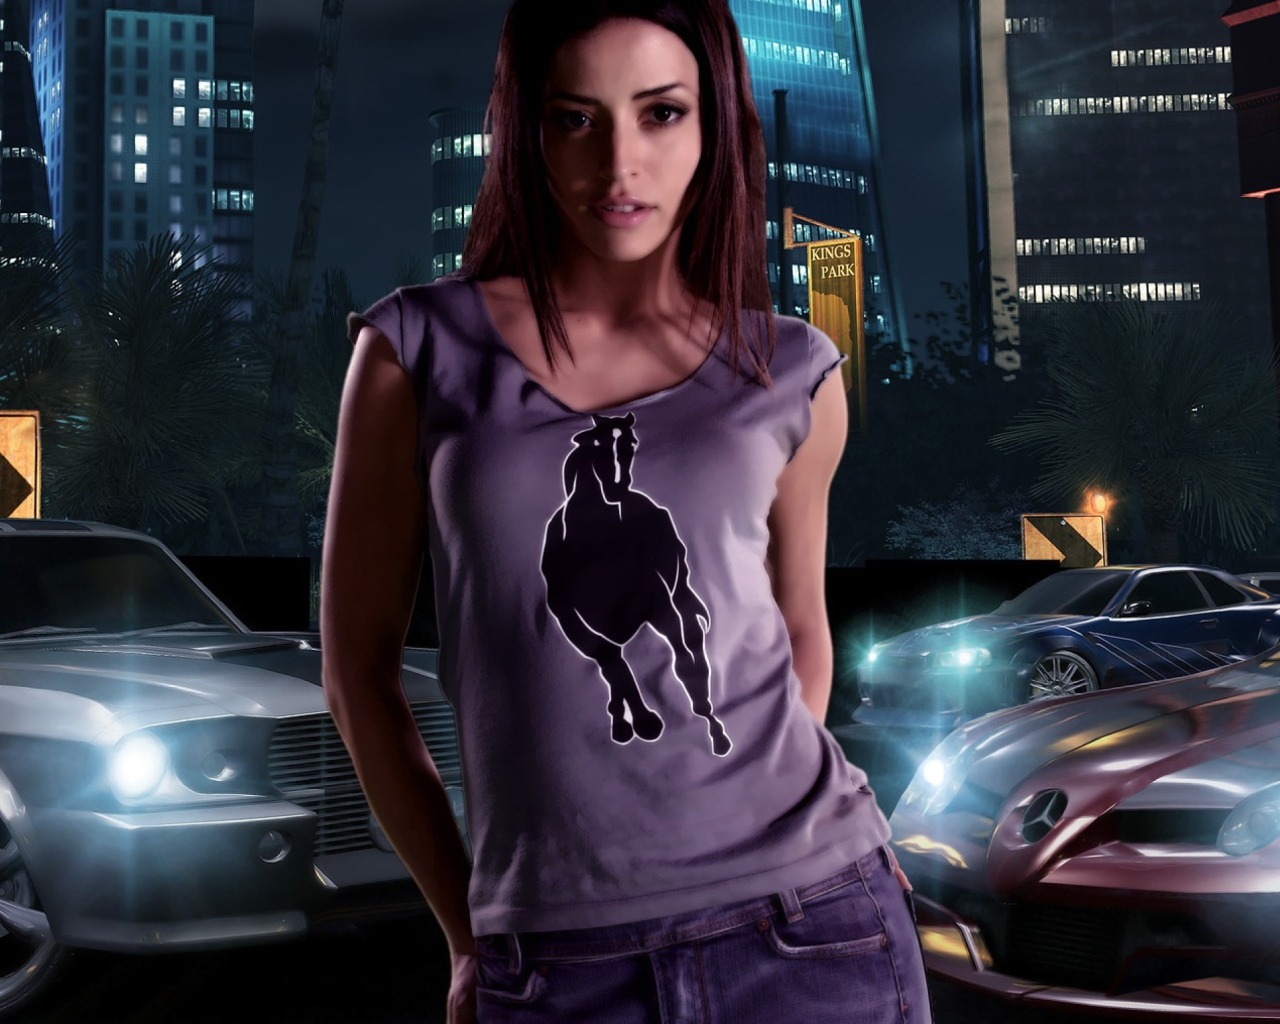 Need for speed underground 2 porn animes naked photo